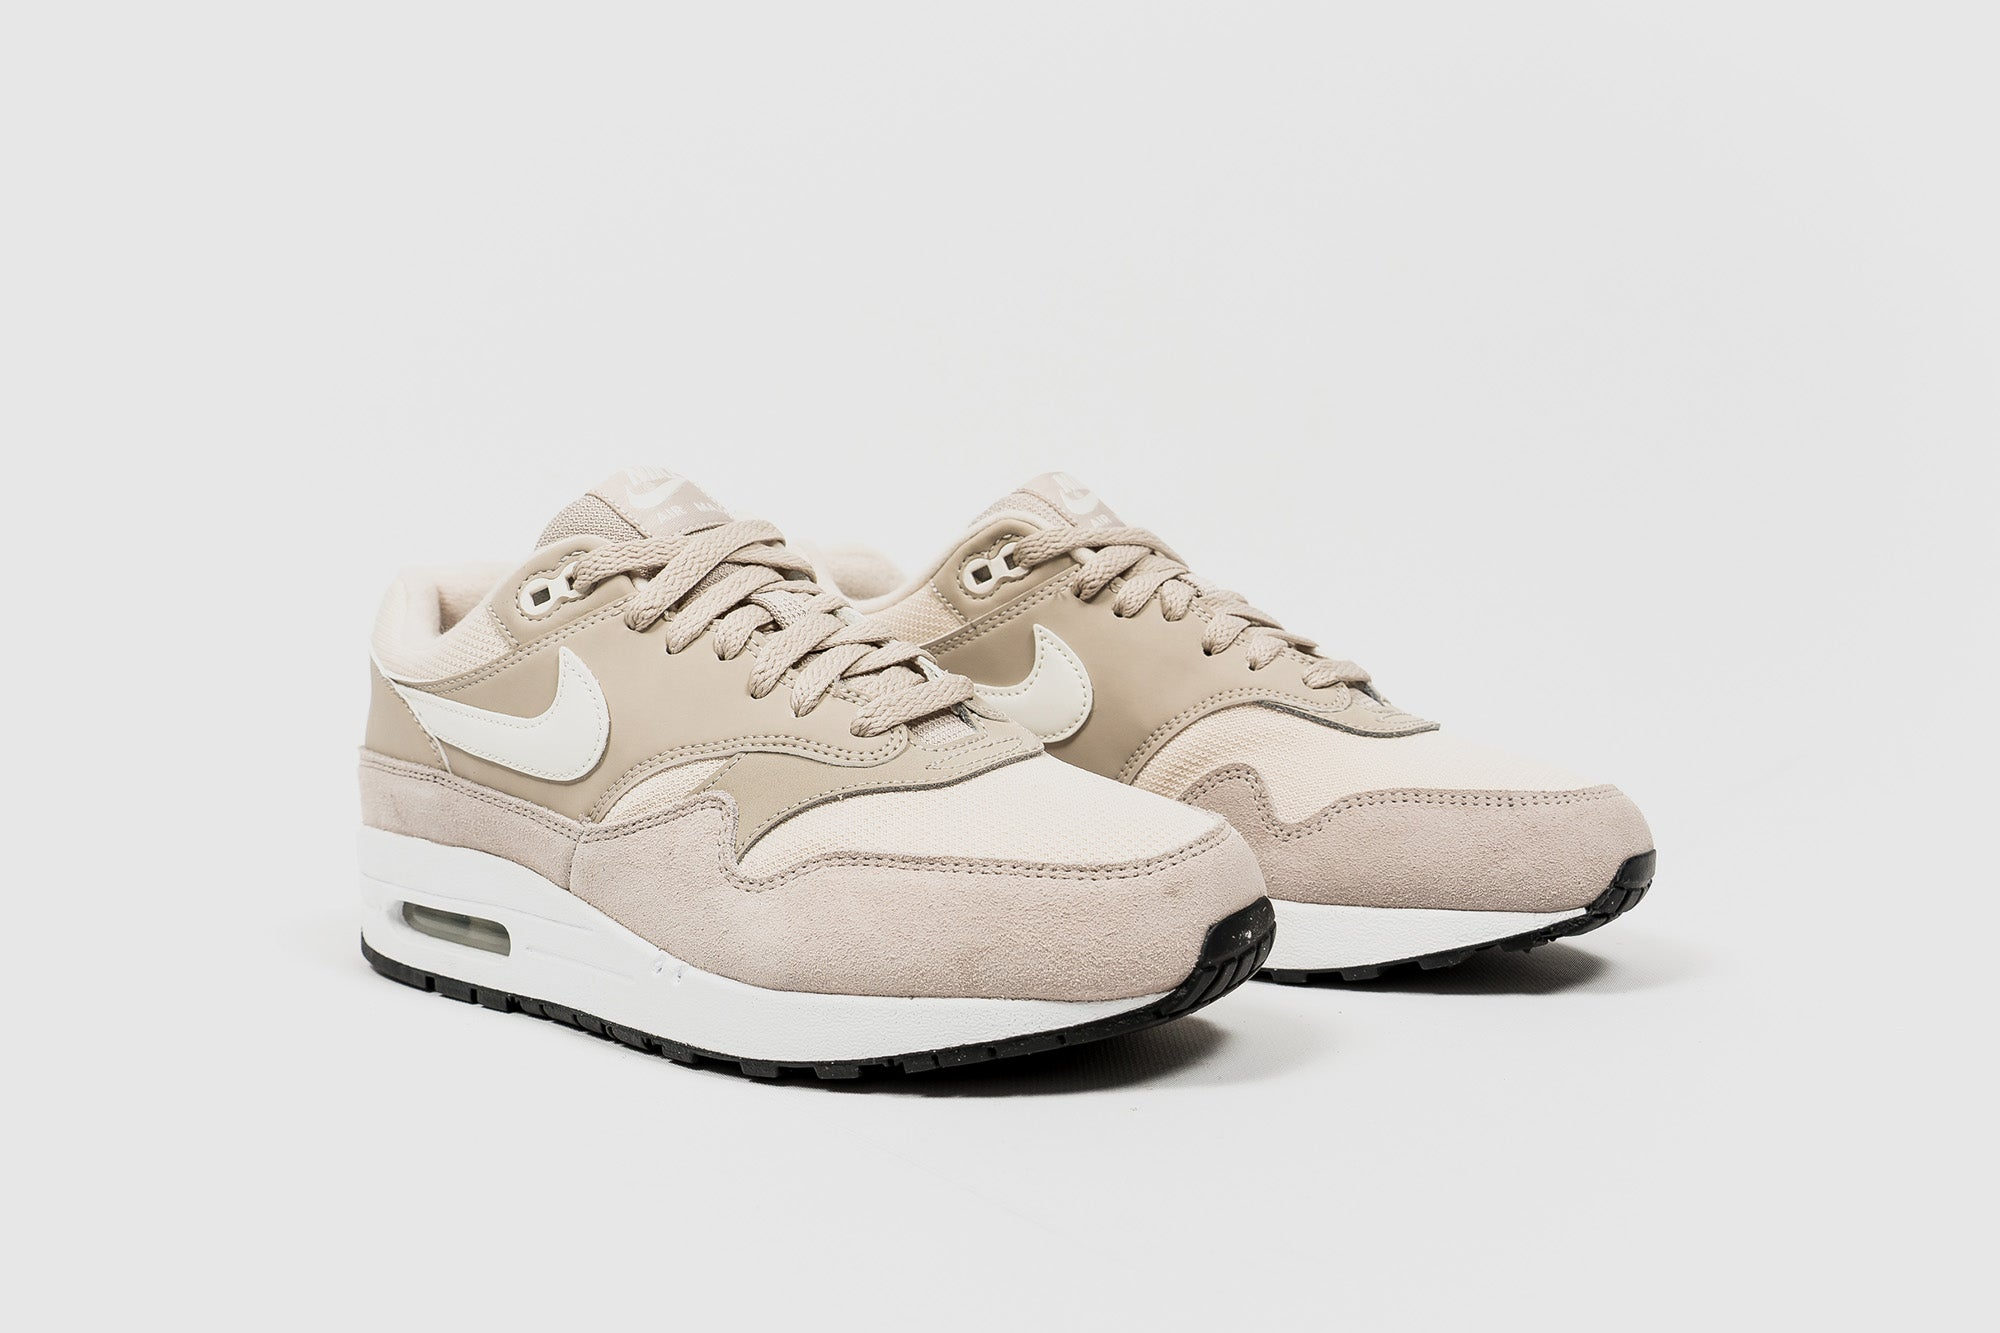 detailed look af2c9 fa4a0 NIKE WMNS AIR MAX 1